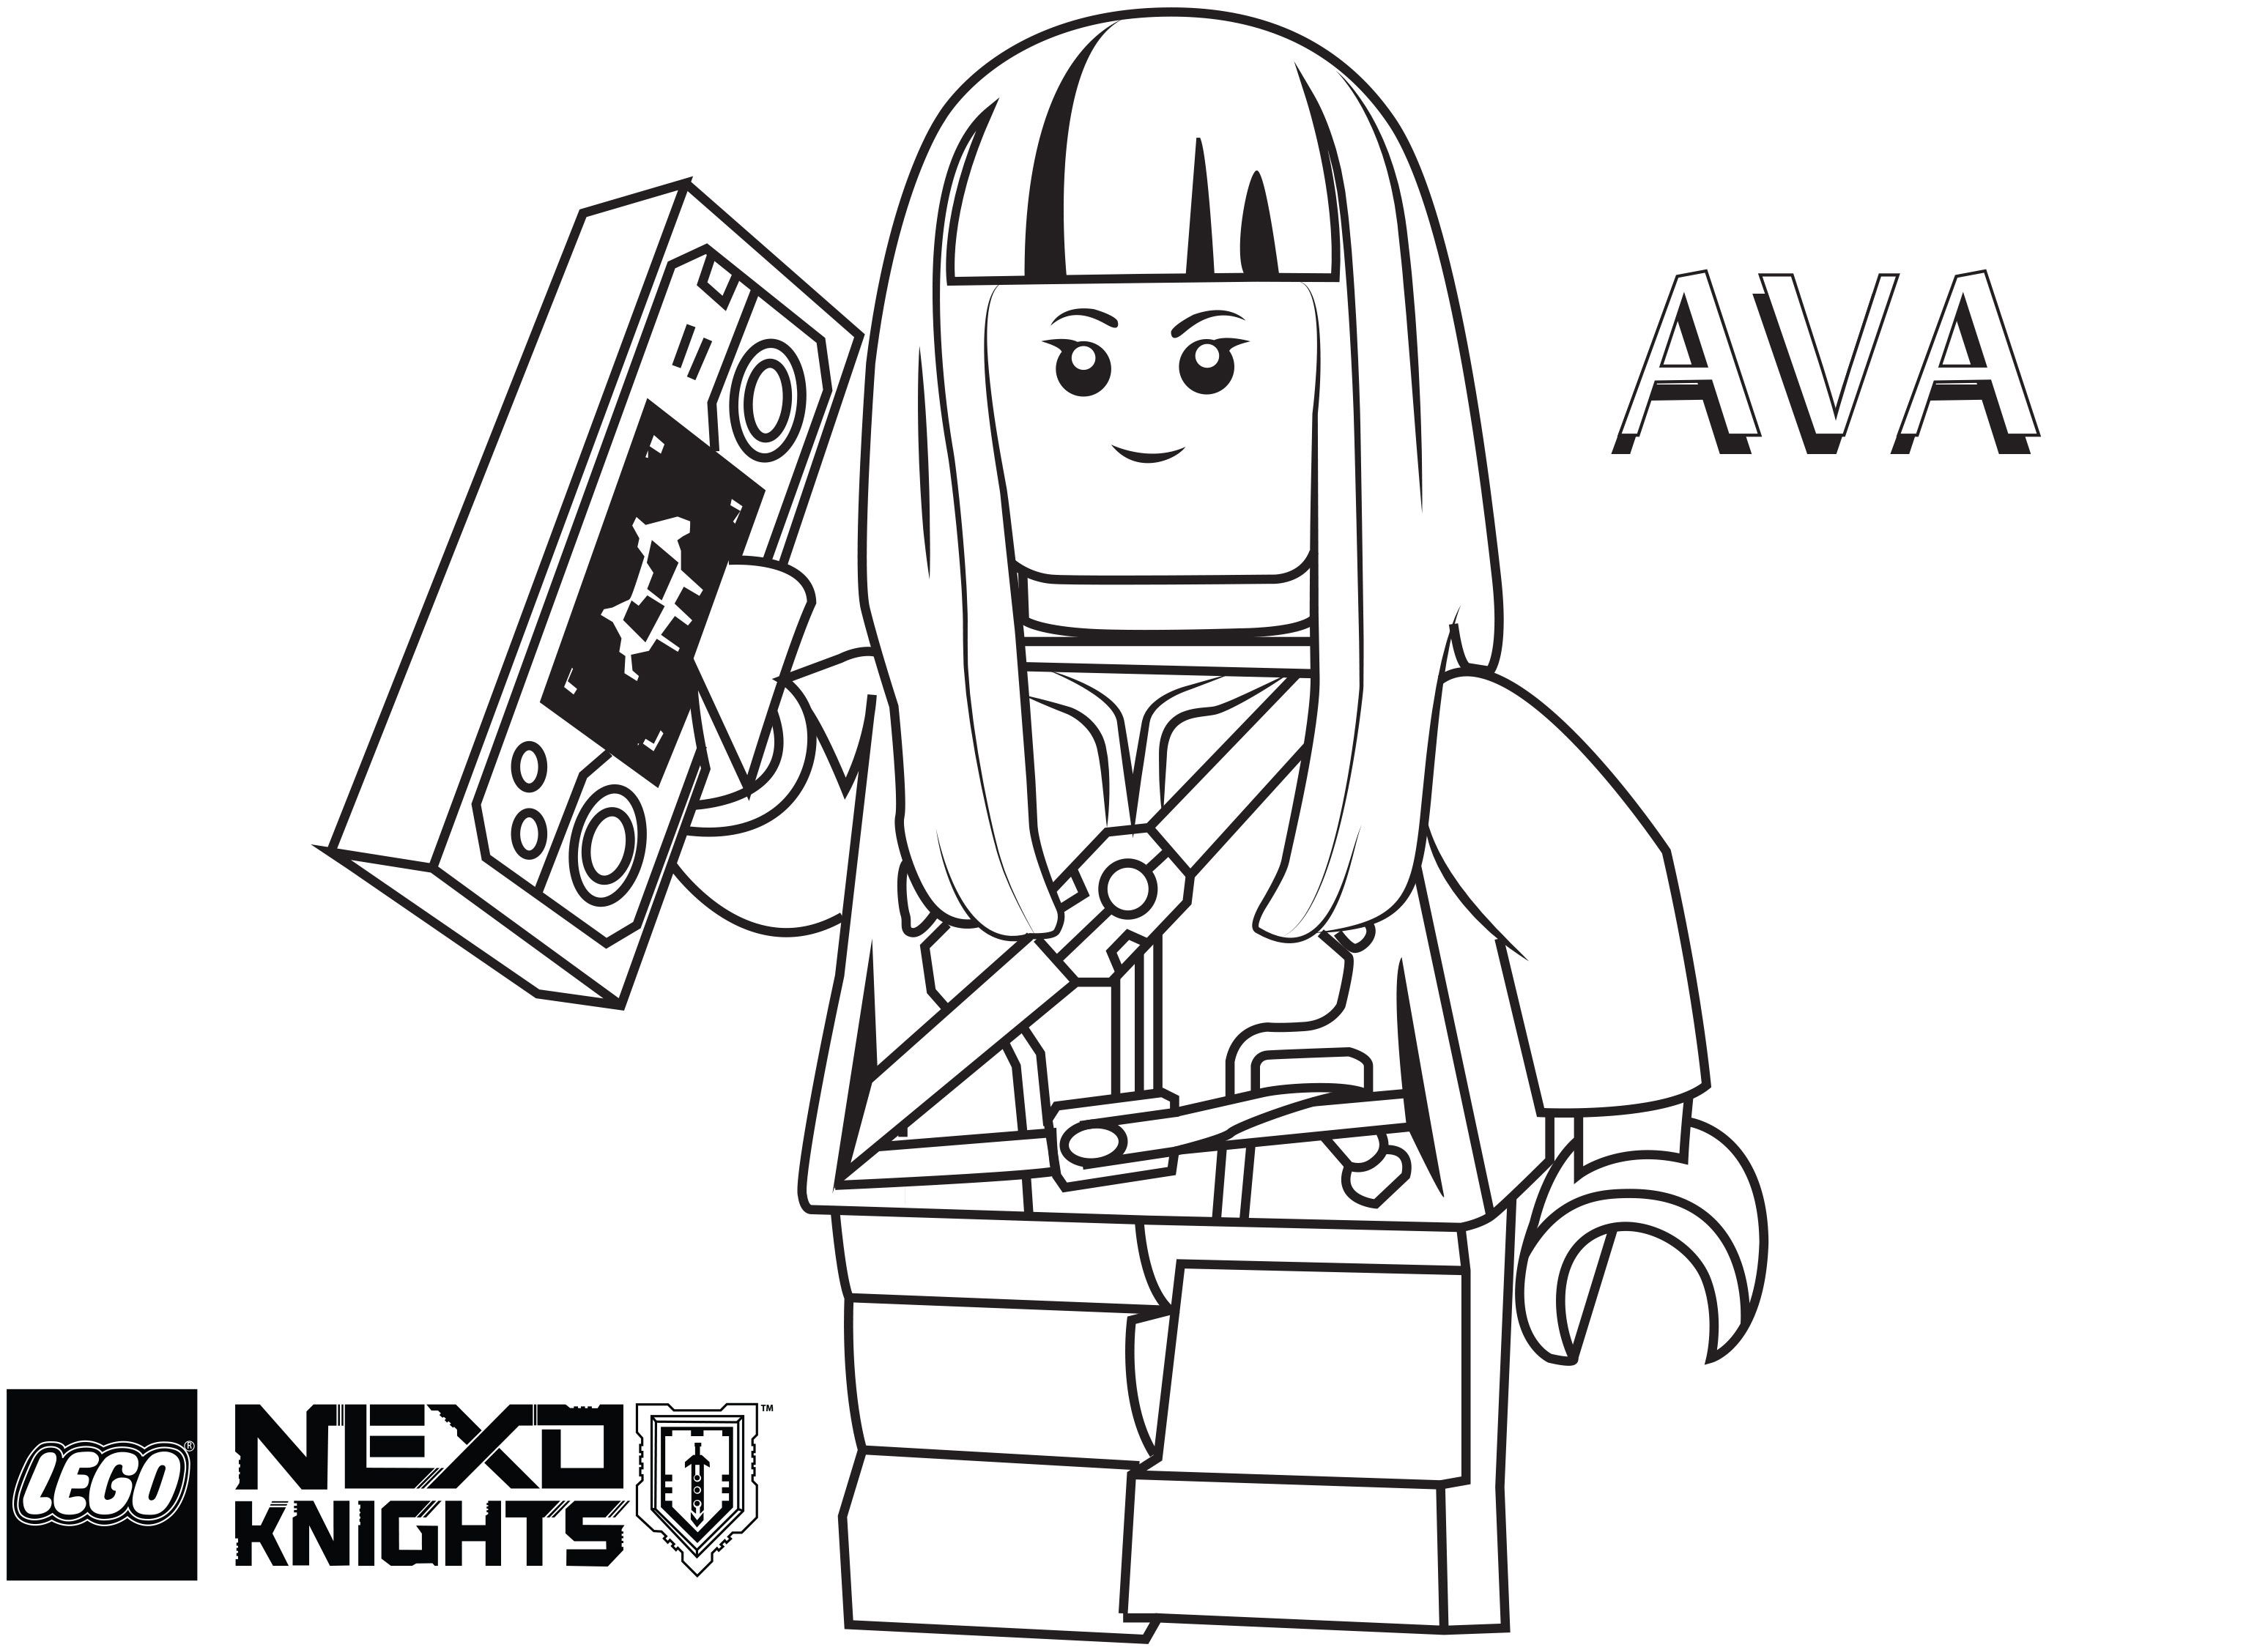 Salon De Hardin Lego Nexo Knights Coloring Pages : Free Printable Lego